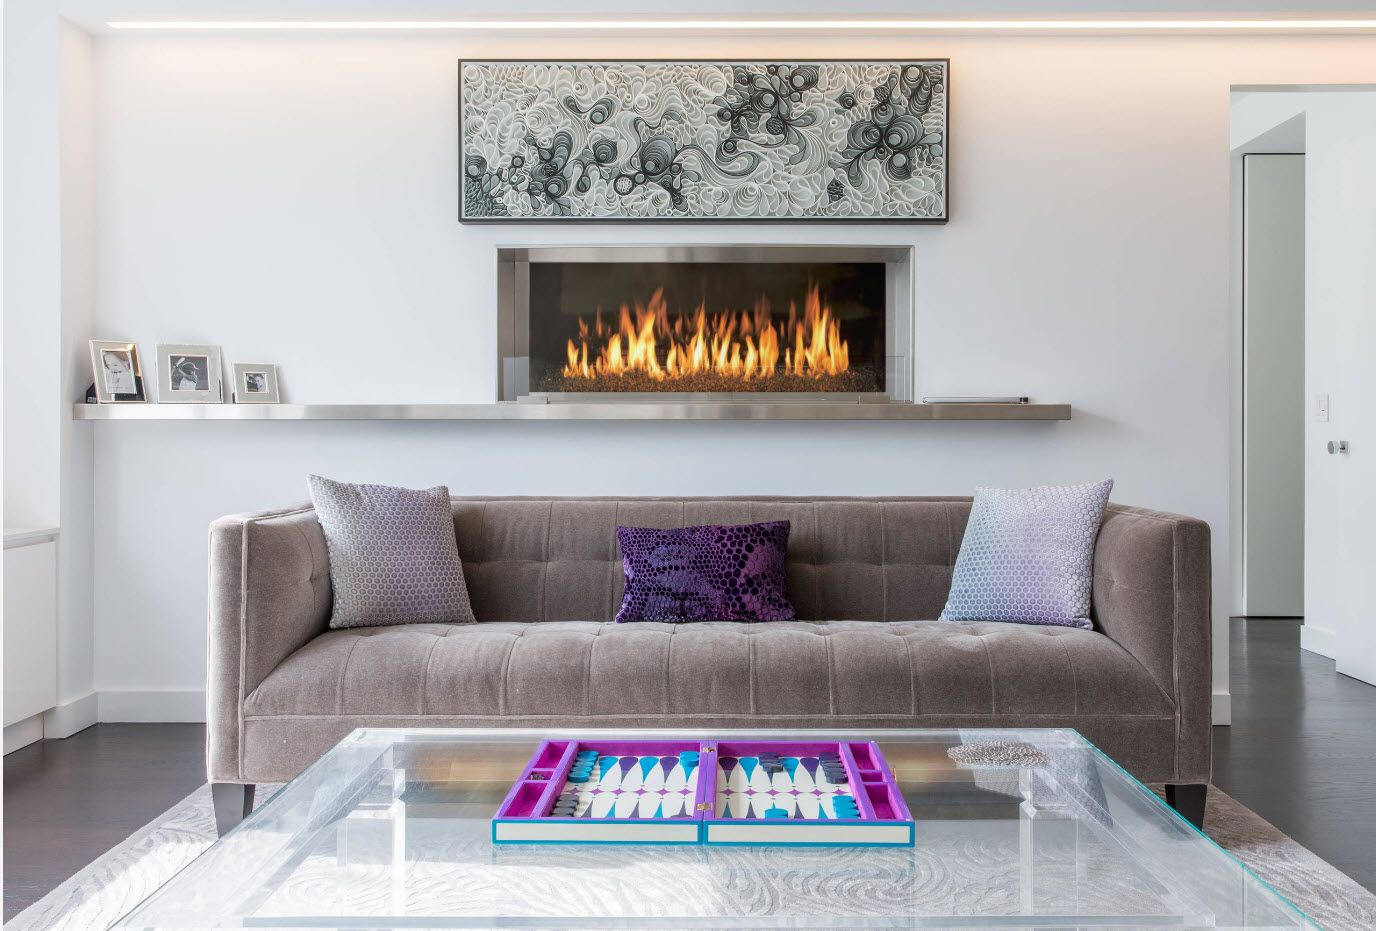 Artificial fireplace and mantelshelf - an essencial attribute of English interior